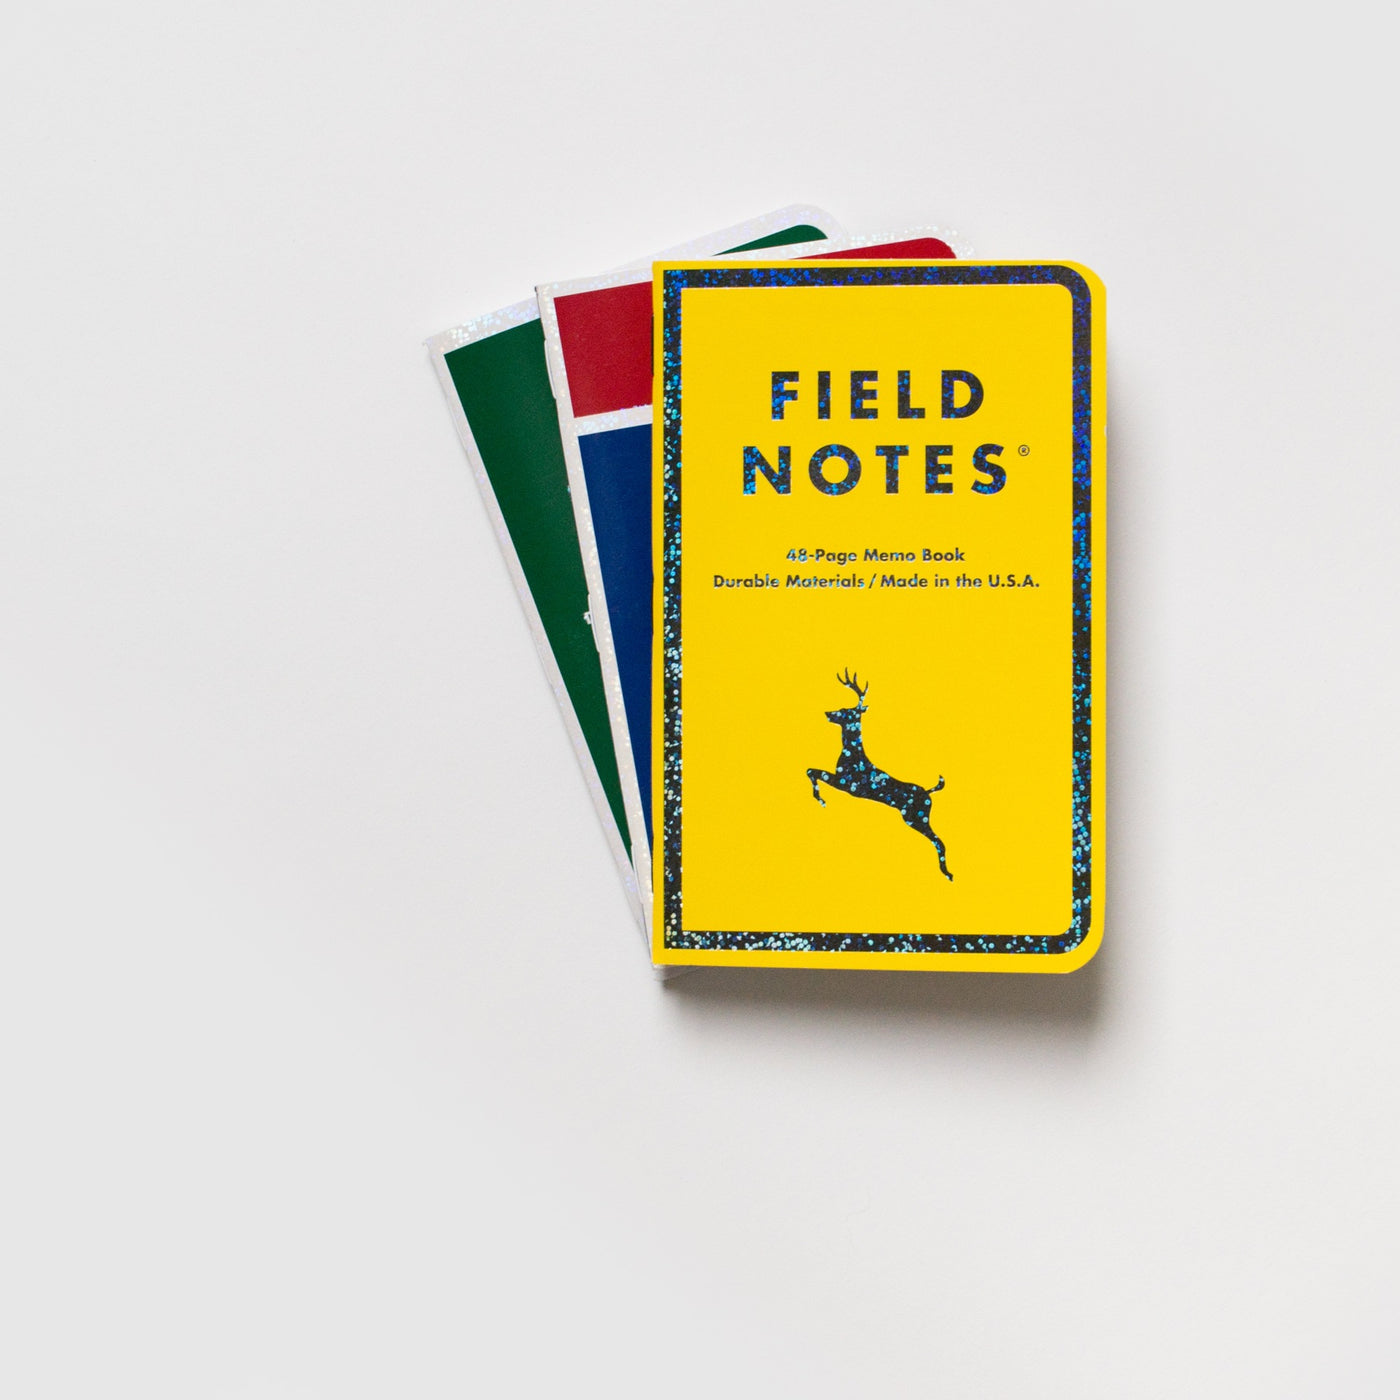 Field Notes Mile Marker Notebook - By Autotype